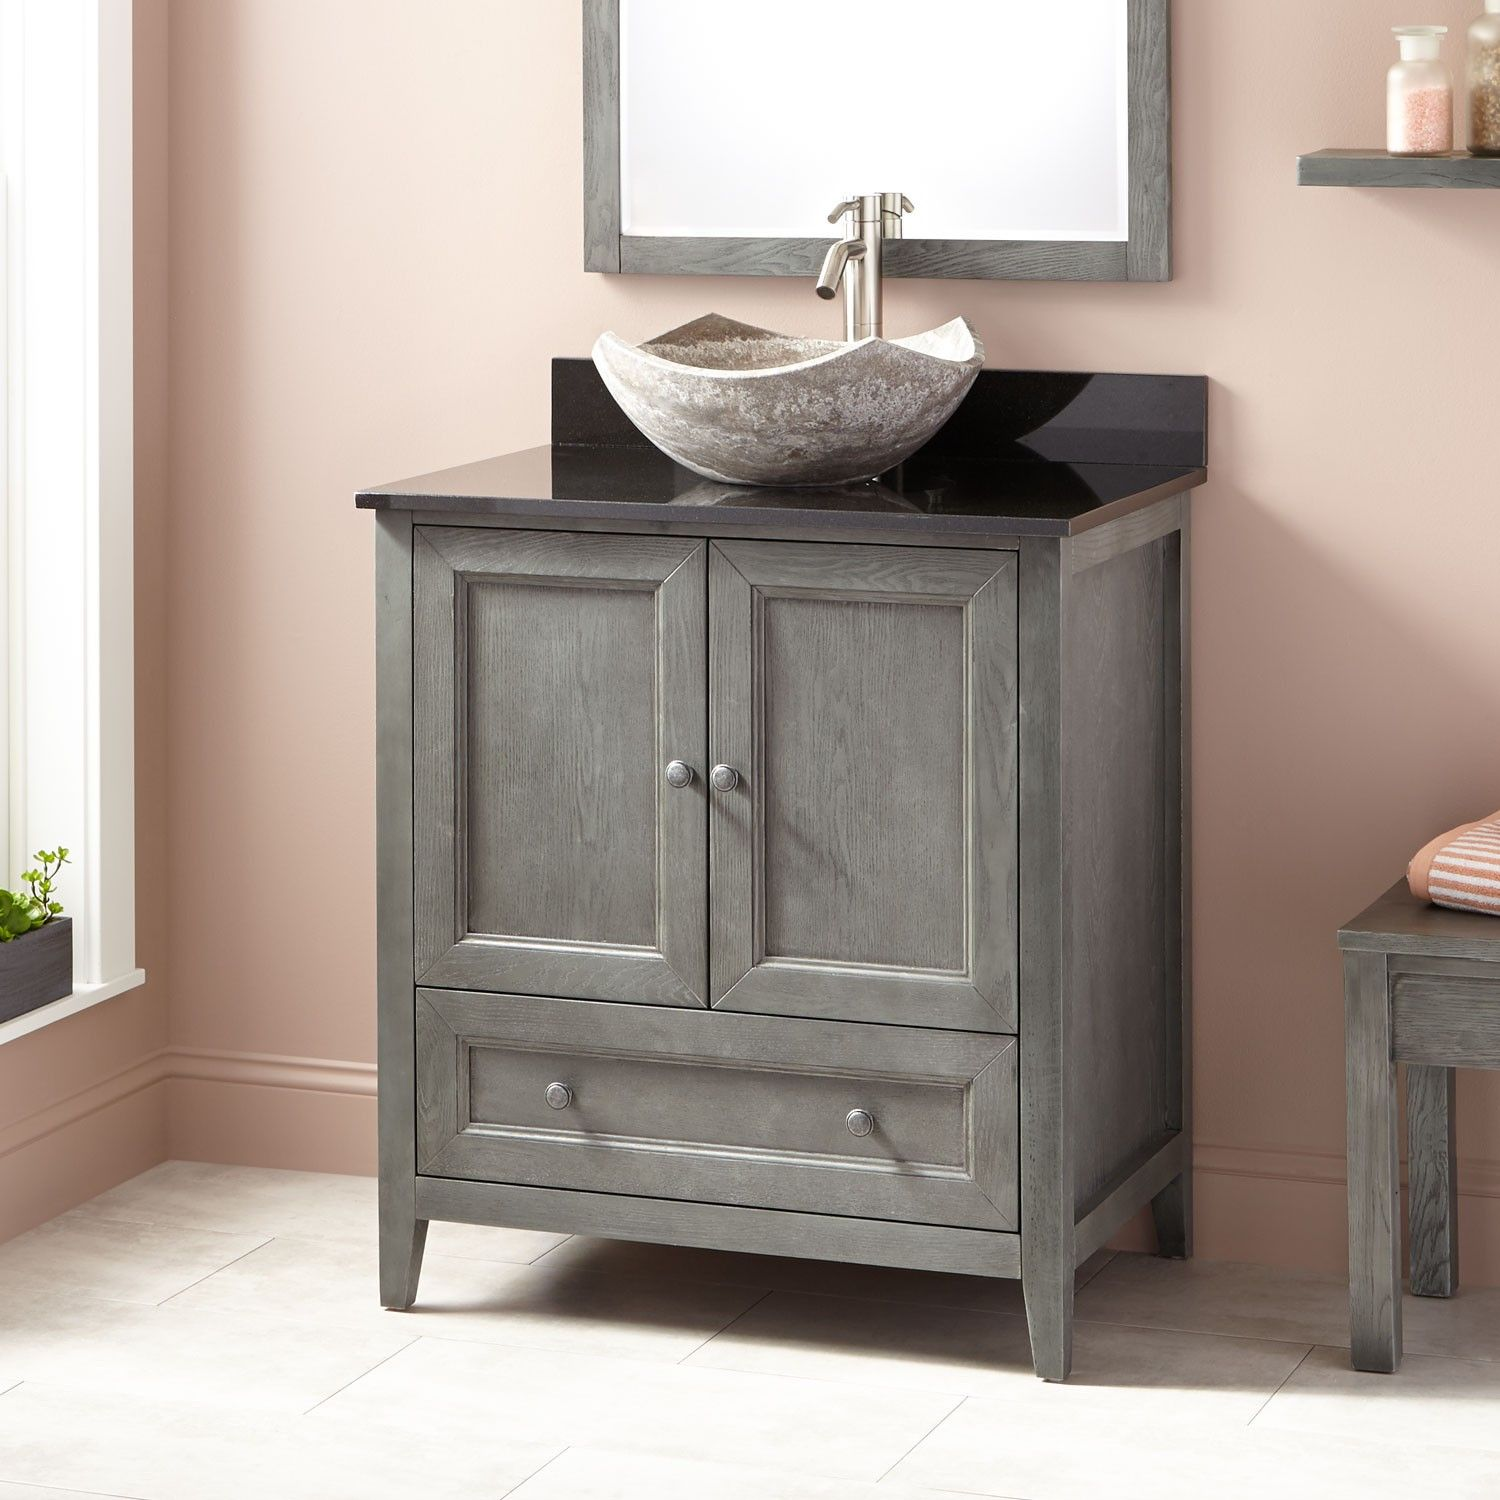 30 Kipley Vessel Sink Vanity Gray Wash Vessel Sink Vanity Small Bathroom Sinks Small Bathroom Sink Cabinet